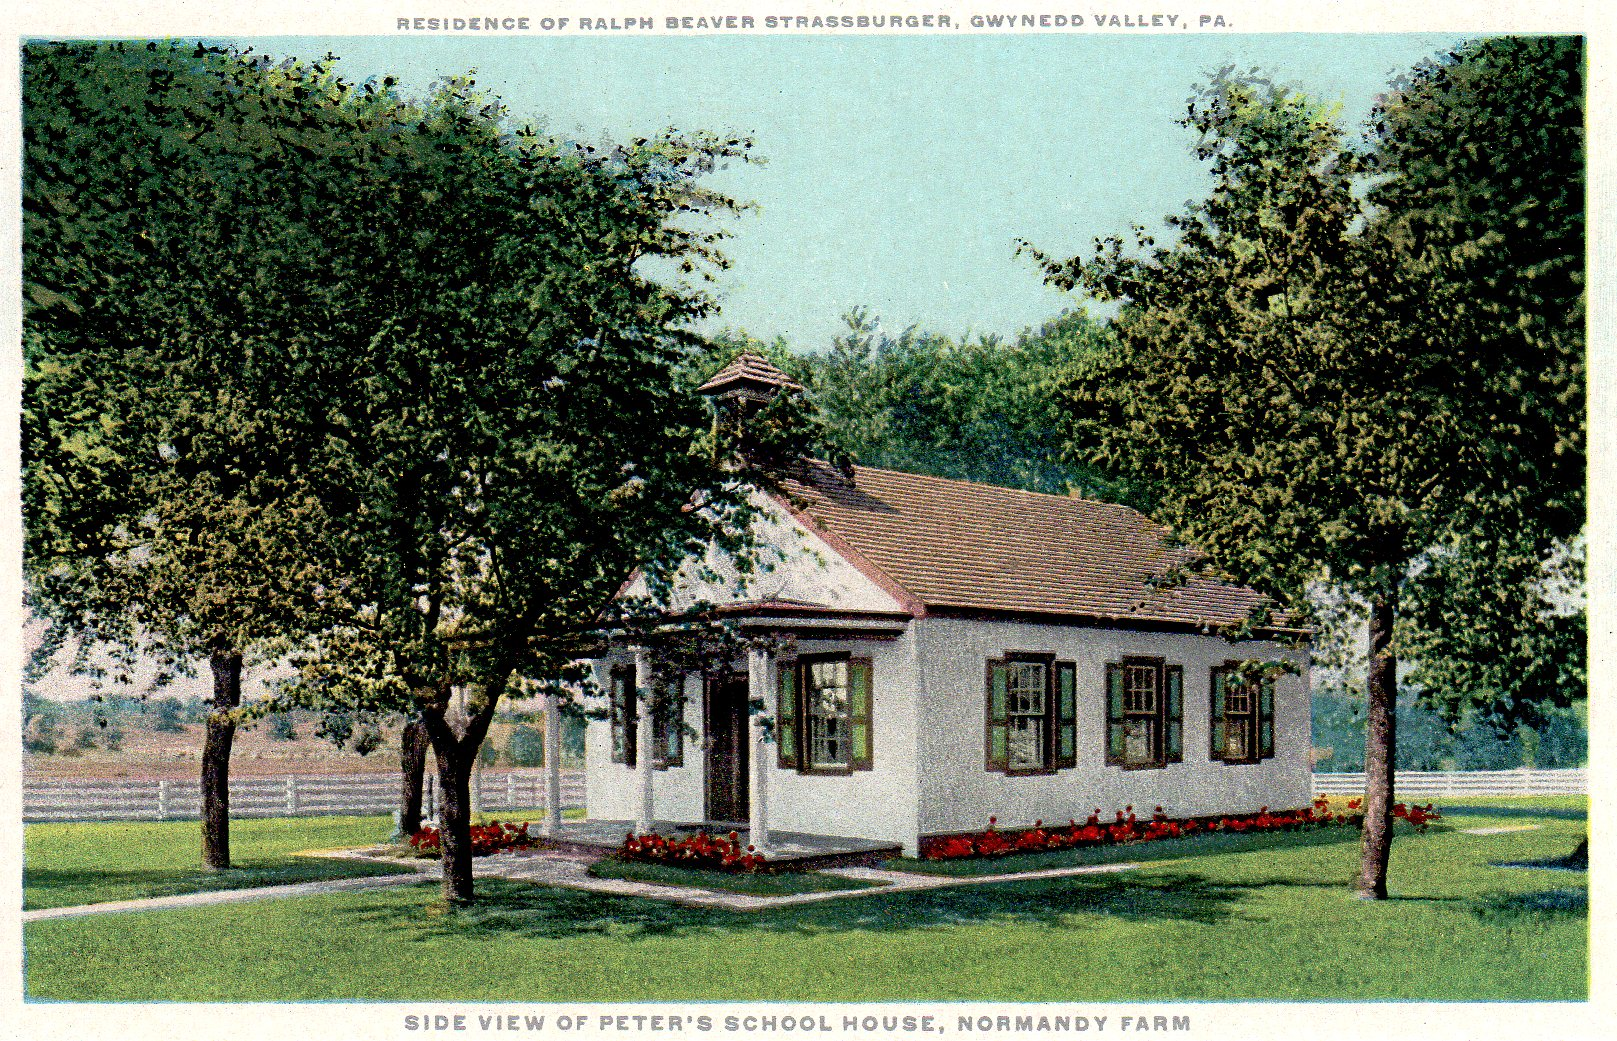 Post Card Collection (E Simon)_2682_82_Home Ralph Beaver Strassburger, Gwynedd Valley, Pa_Side Peters School House, Normandy Farm